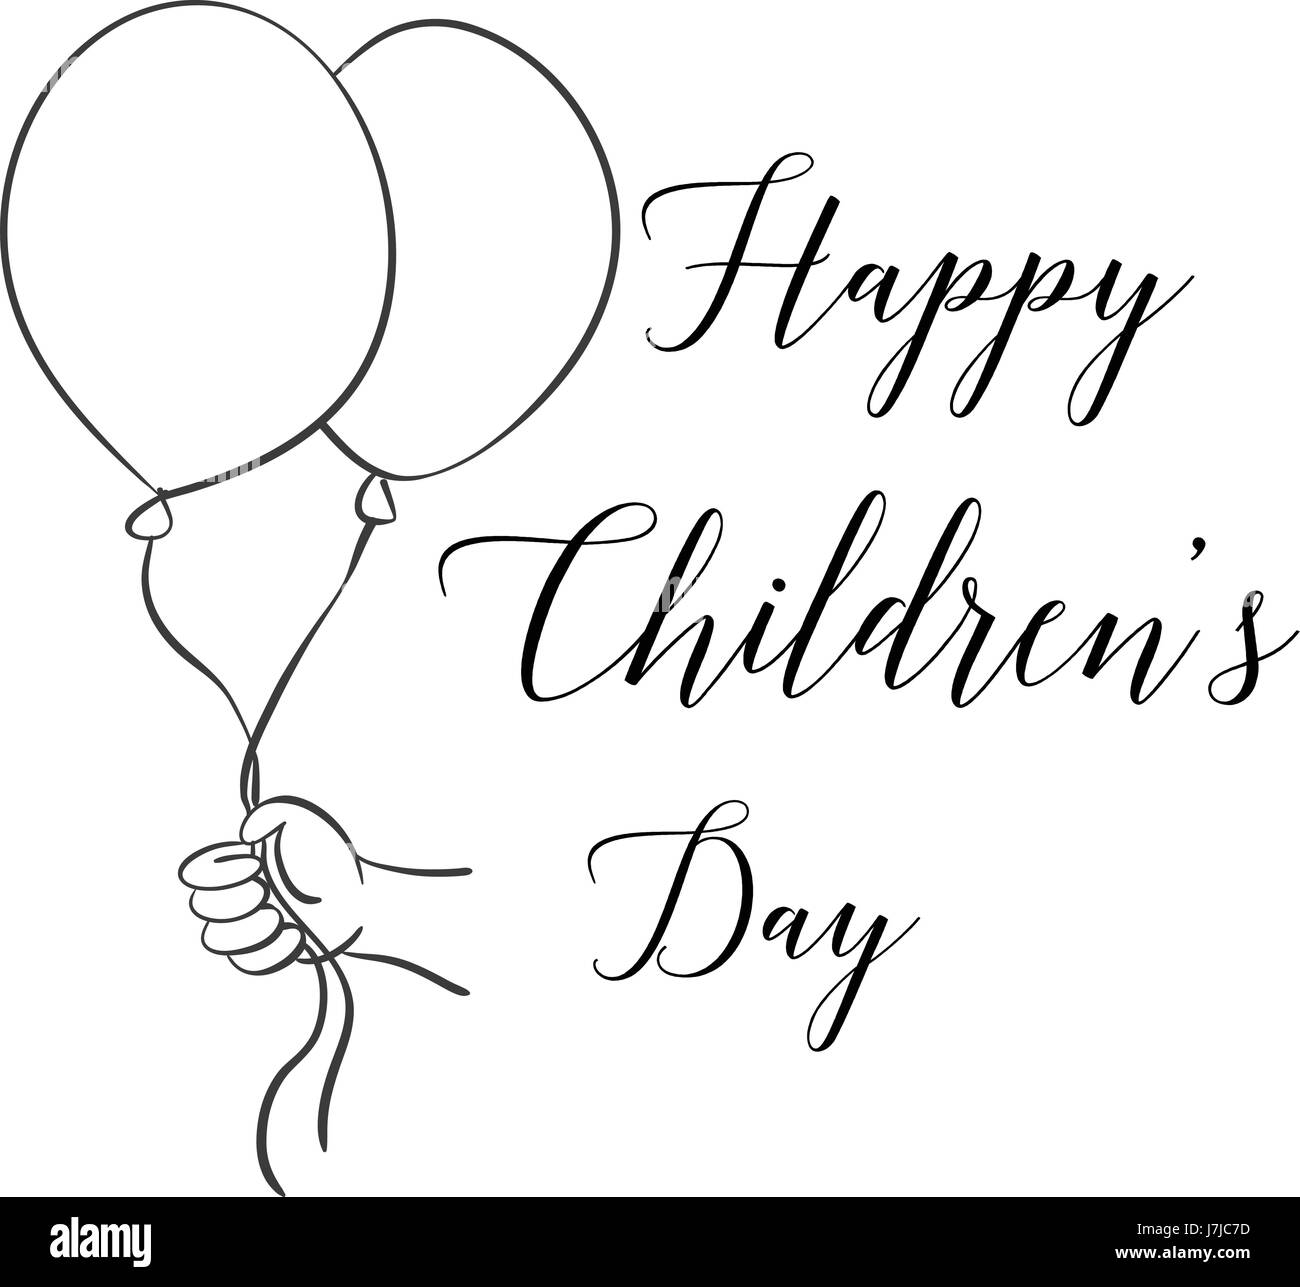 Childrens Day With Balloon Hand Draw Stock Vector Art Illustration